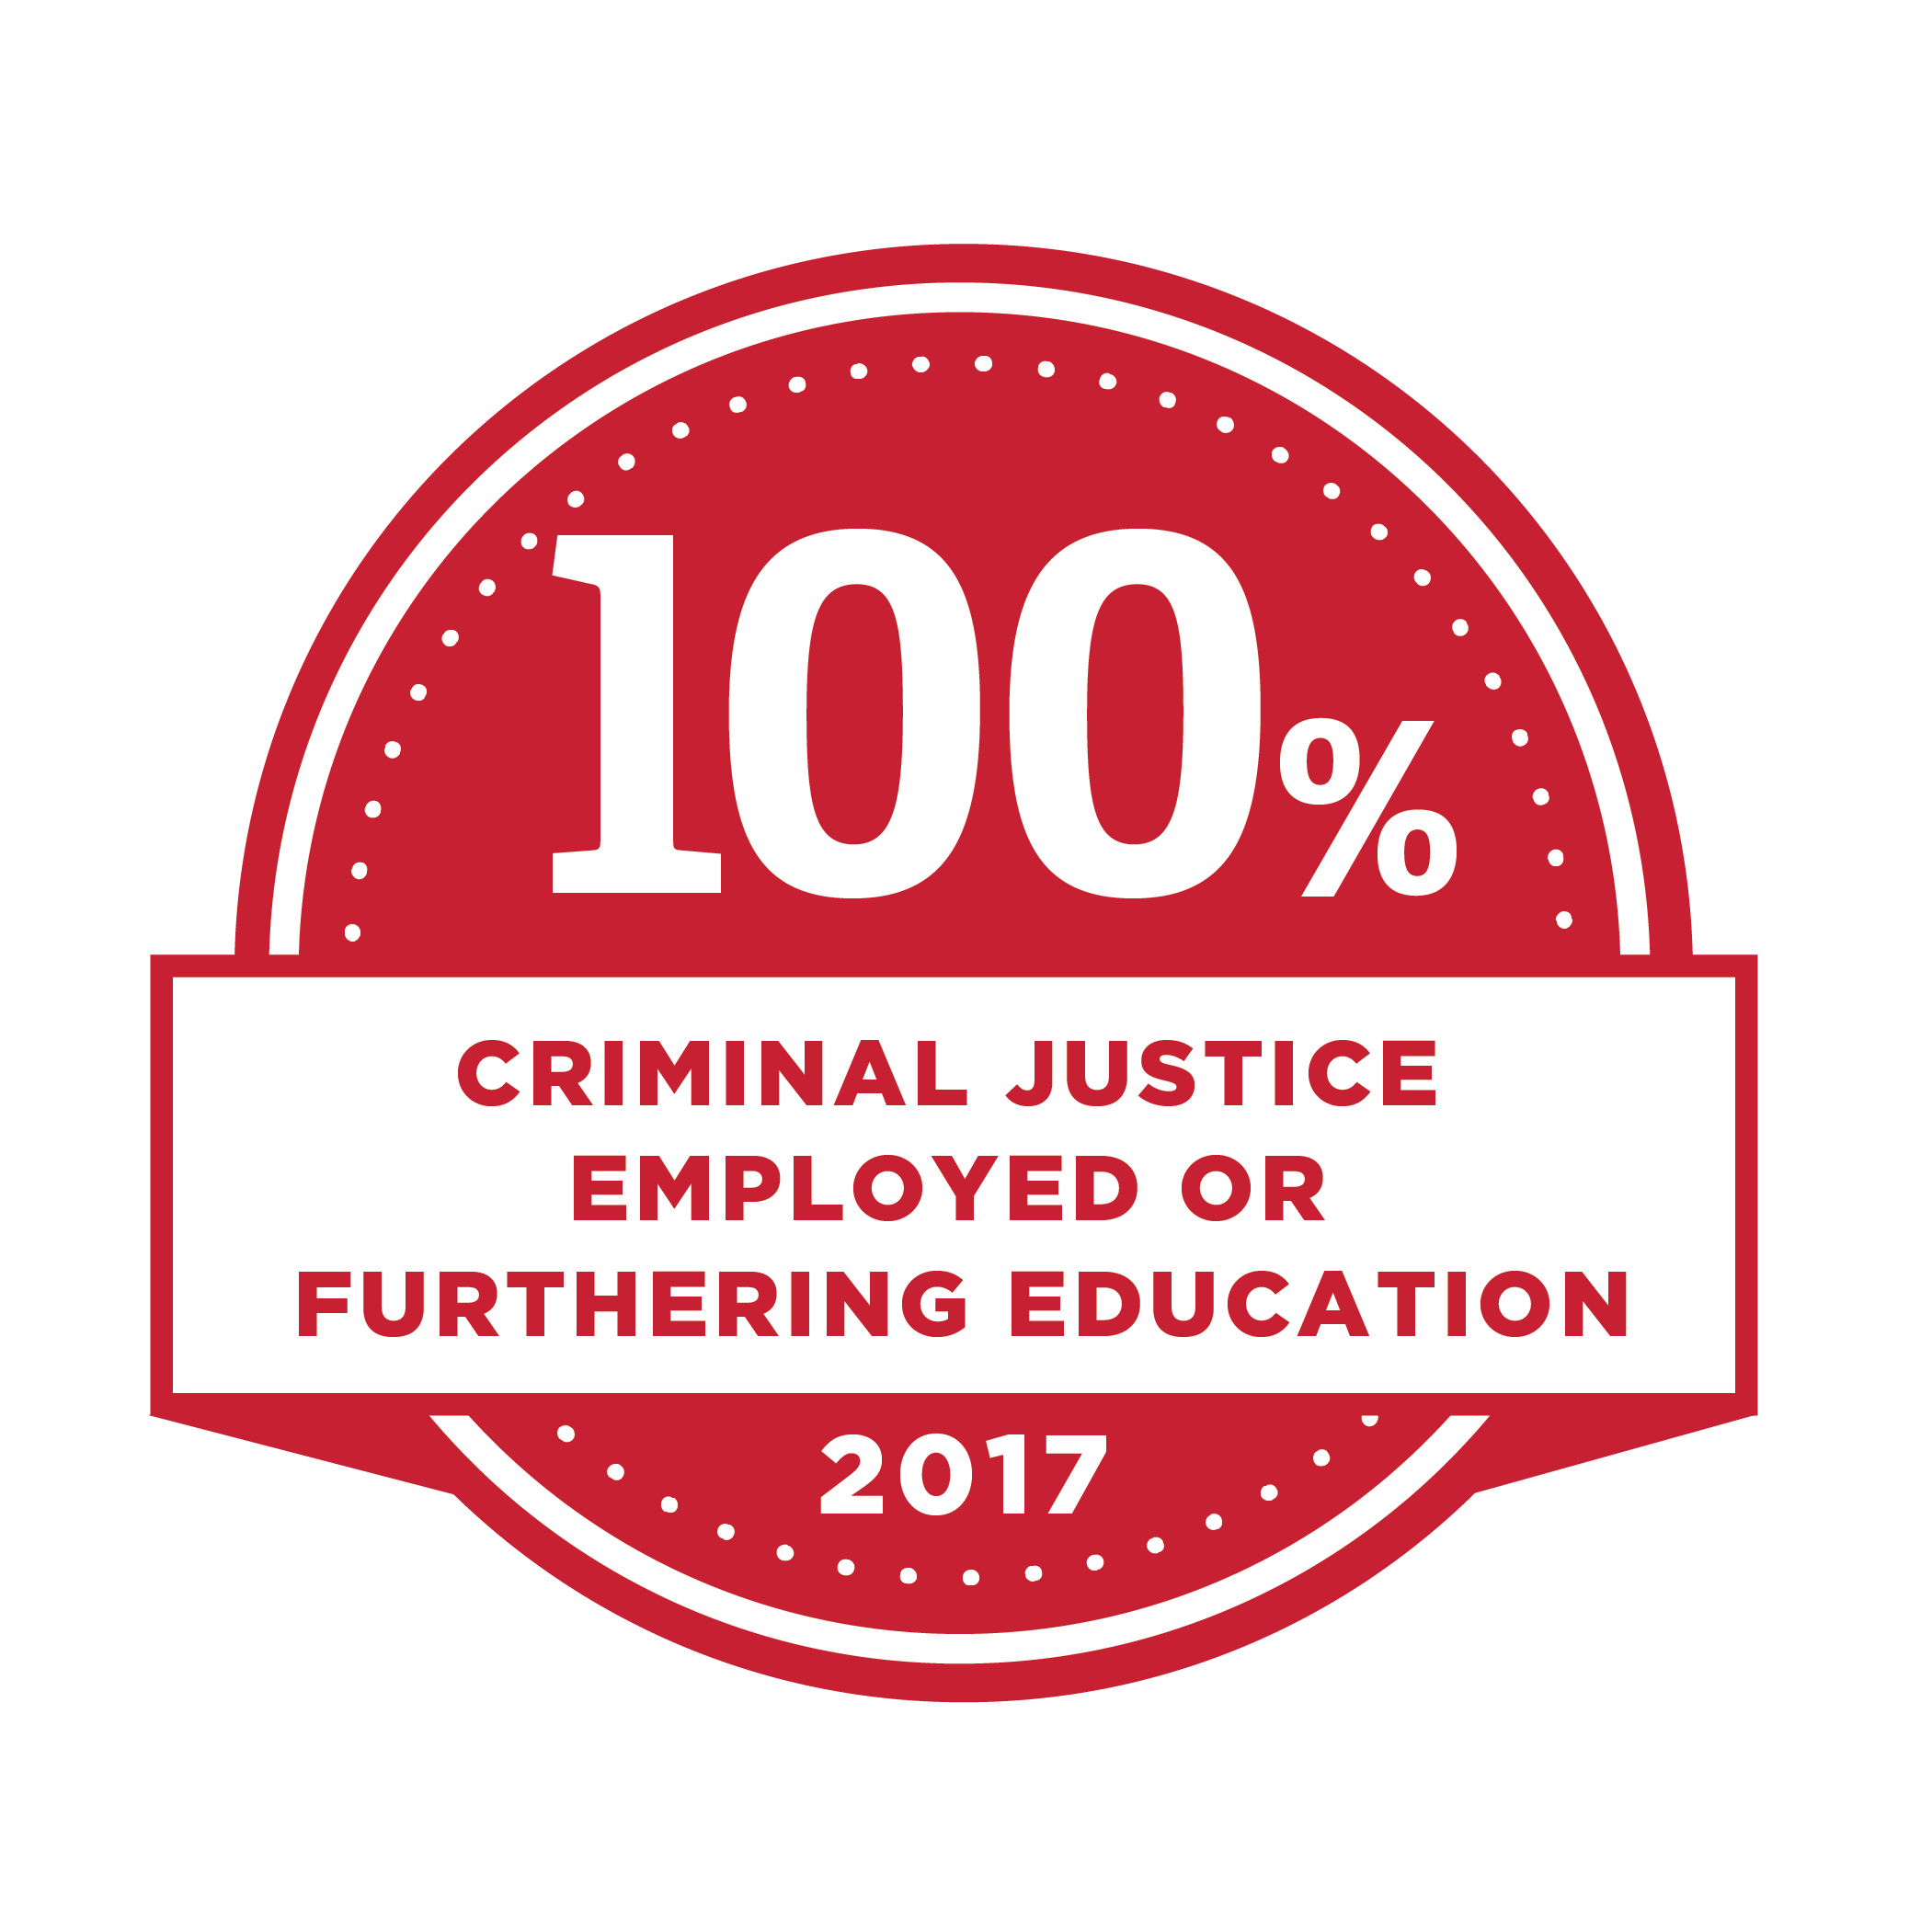 100% Criminal Justice Employed or furthering education. 2017